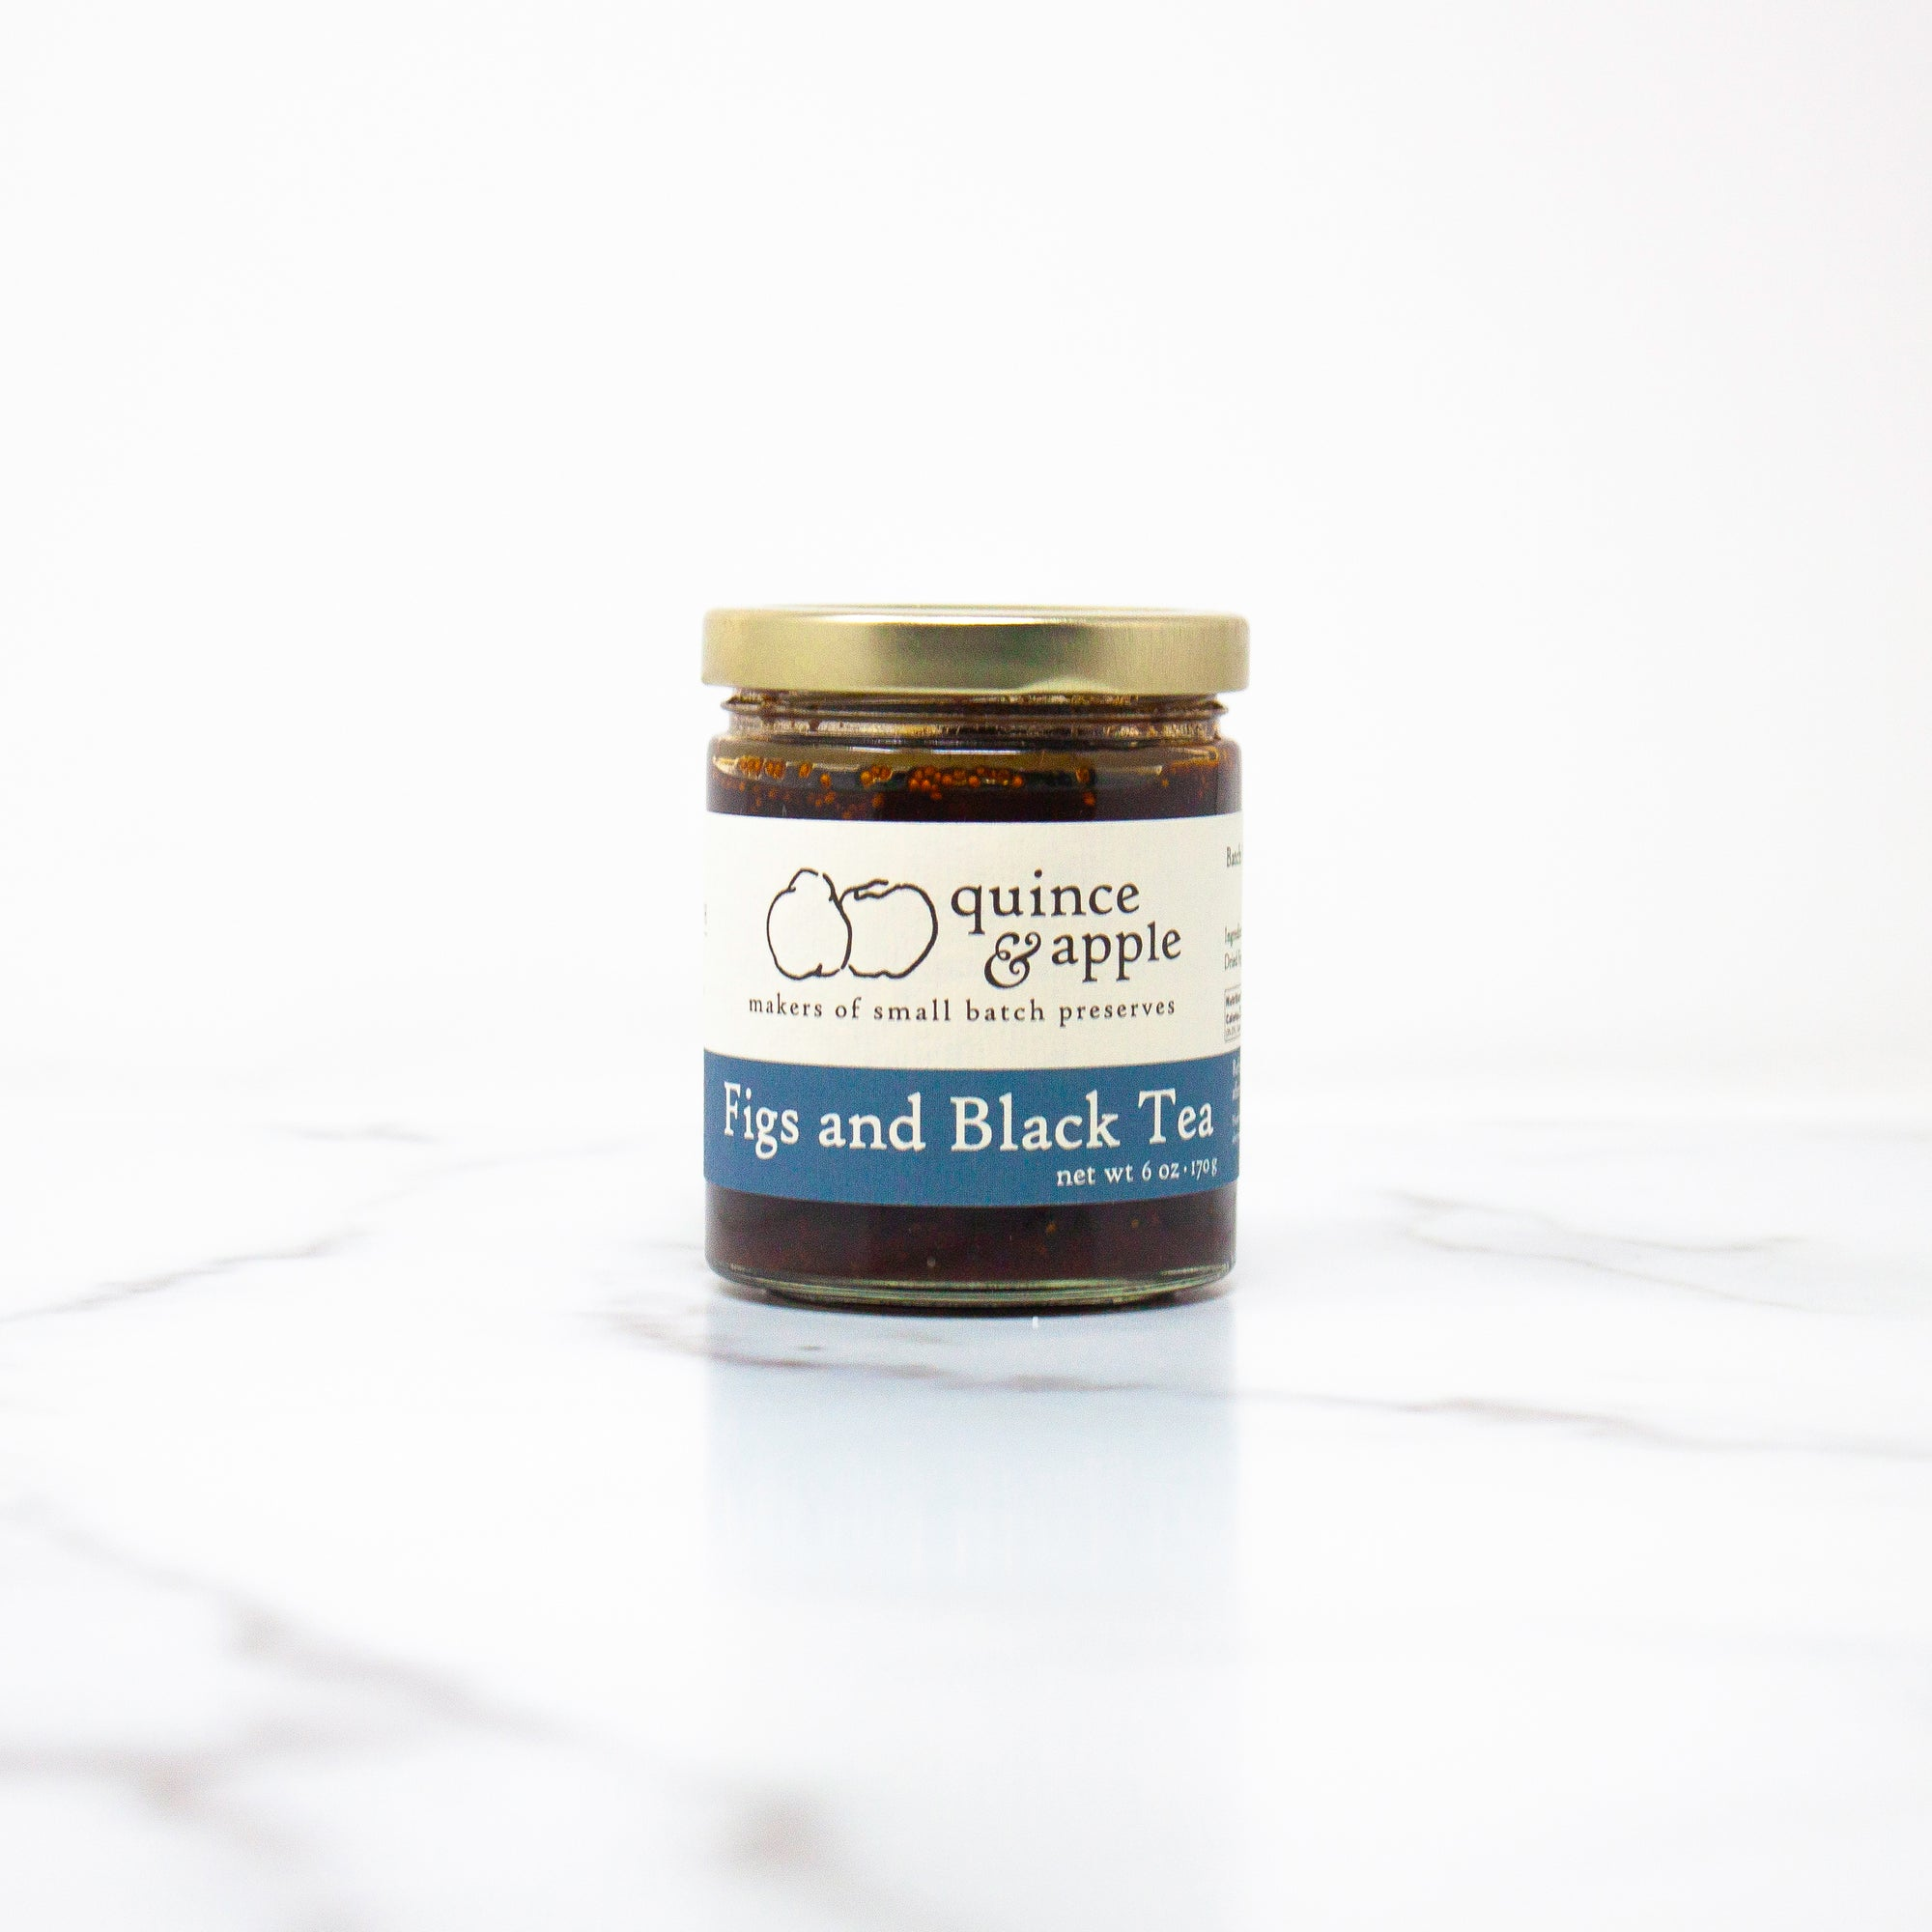 Figs and Black Tea - fig jam for the sophisticated palette